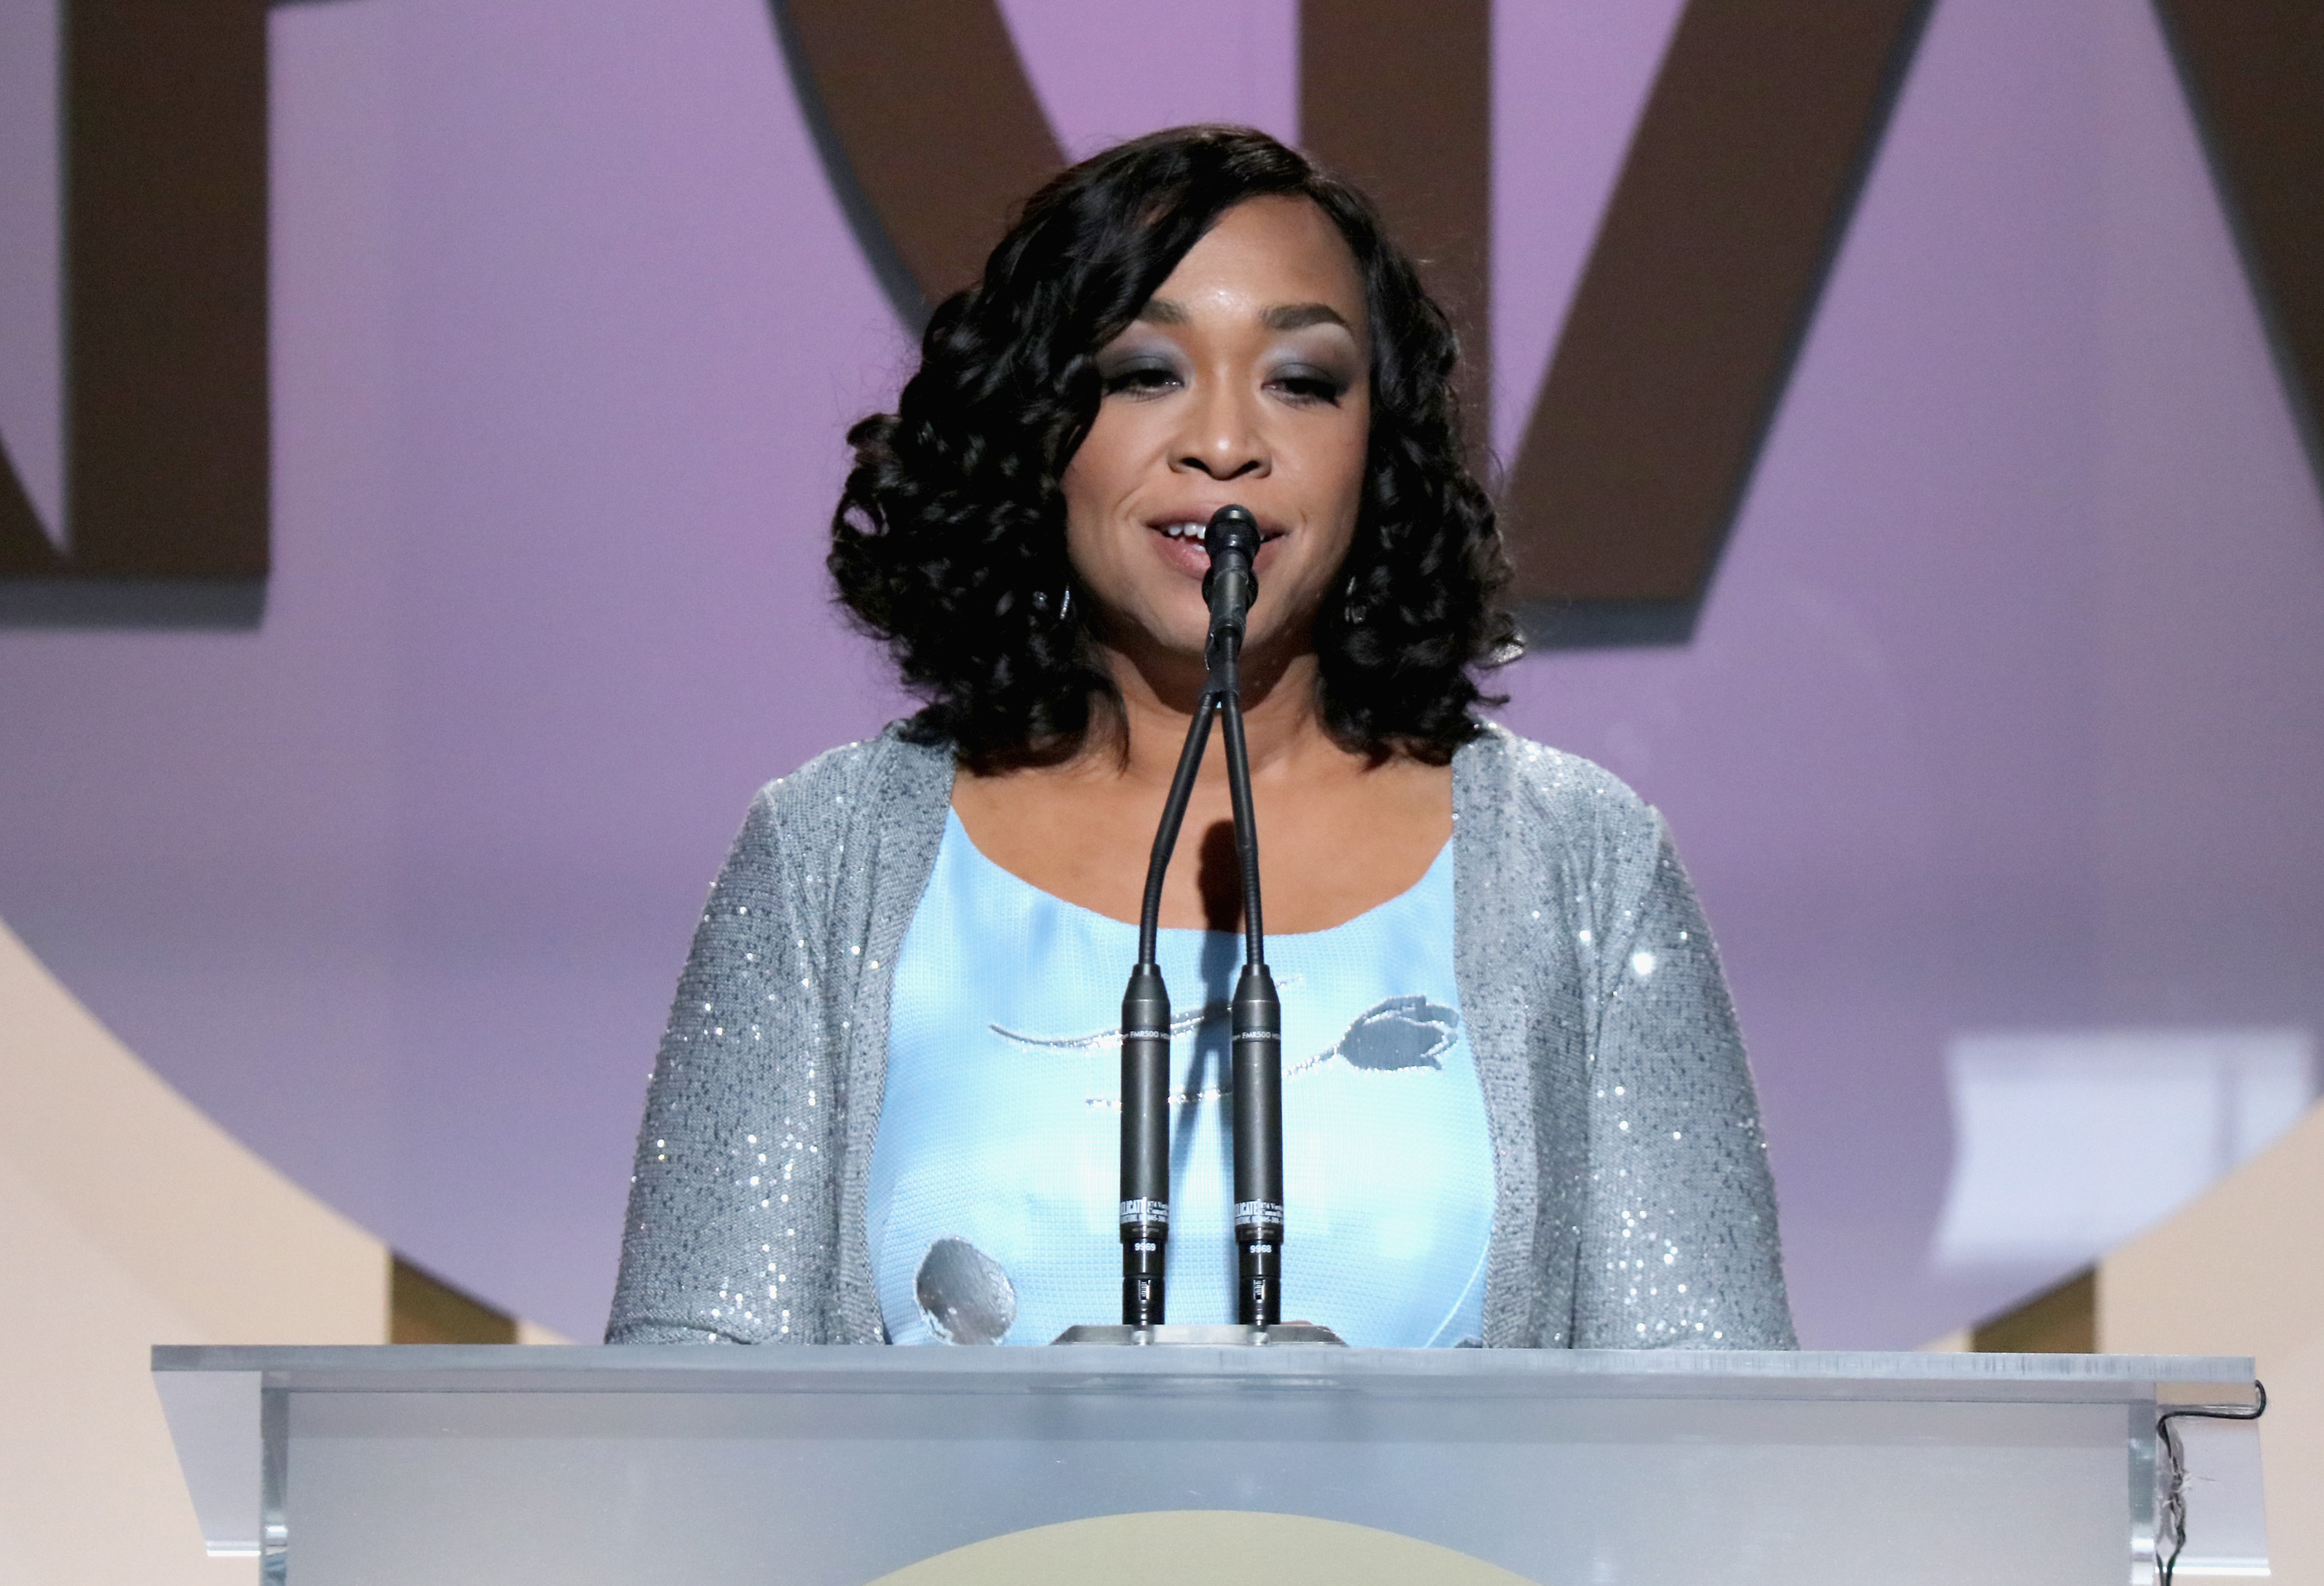 Shonda Rhimes on stage at the 27th Annual Producers Guild Awards at the Hyatt Regency Century Plaza in Century City, Calif., on Jan. 23, 2016.